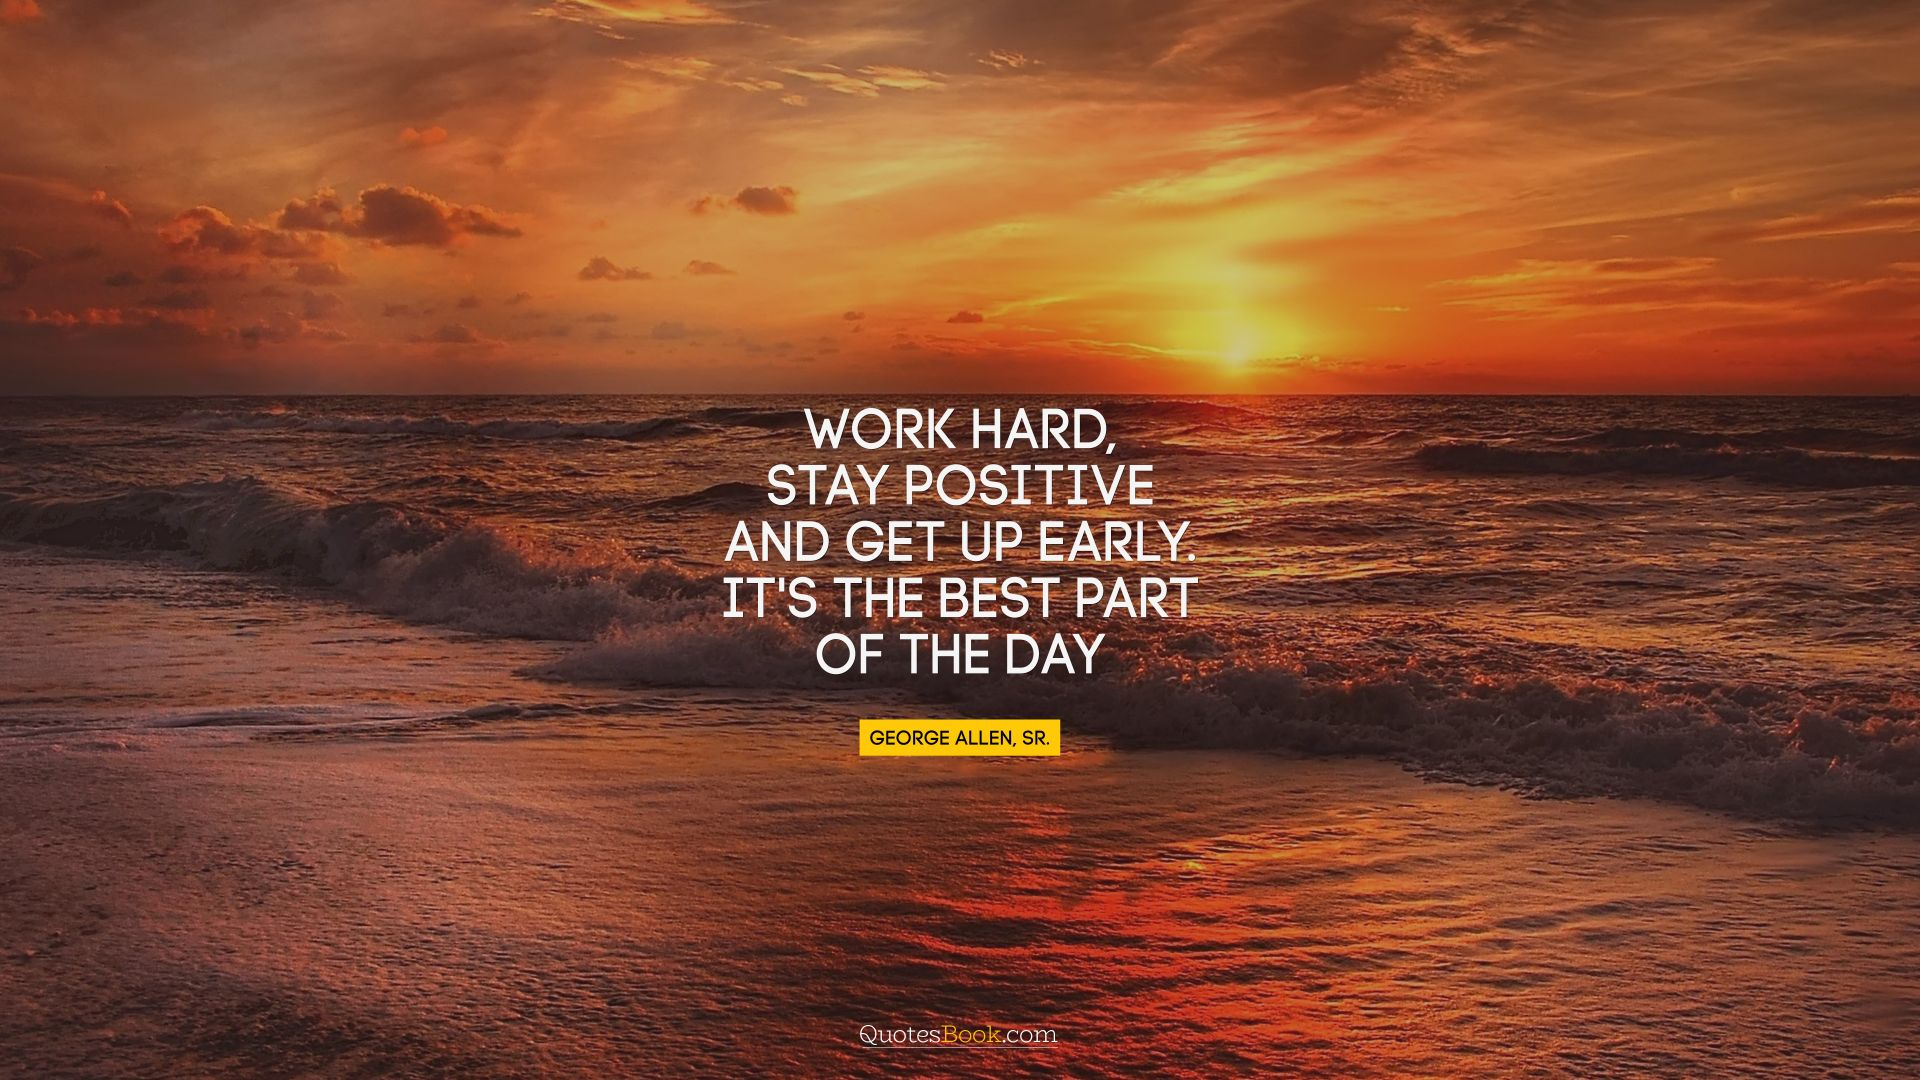 Work hard, stay positive, and get up early. It's the best part of the day. - Quote by George Allen